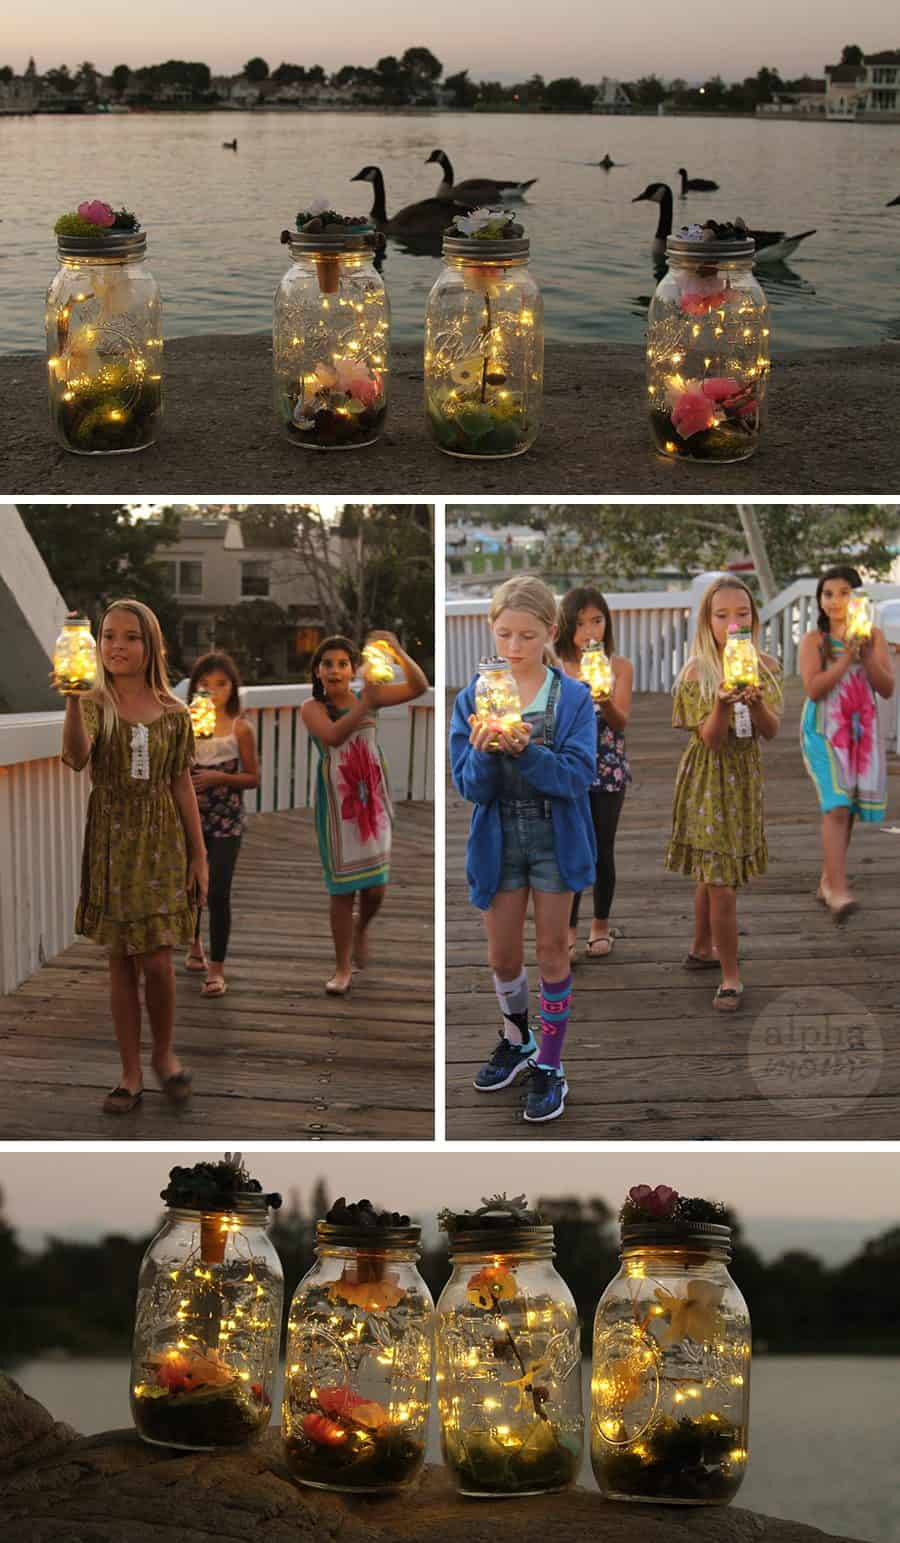 Kids Learn to Make Their Own Light-Up Fairy Jars (sunset) by Brenda Ponnay for Alphamom.com